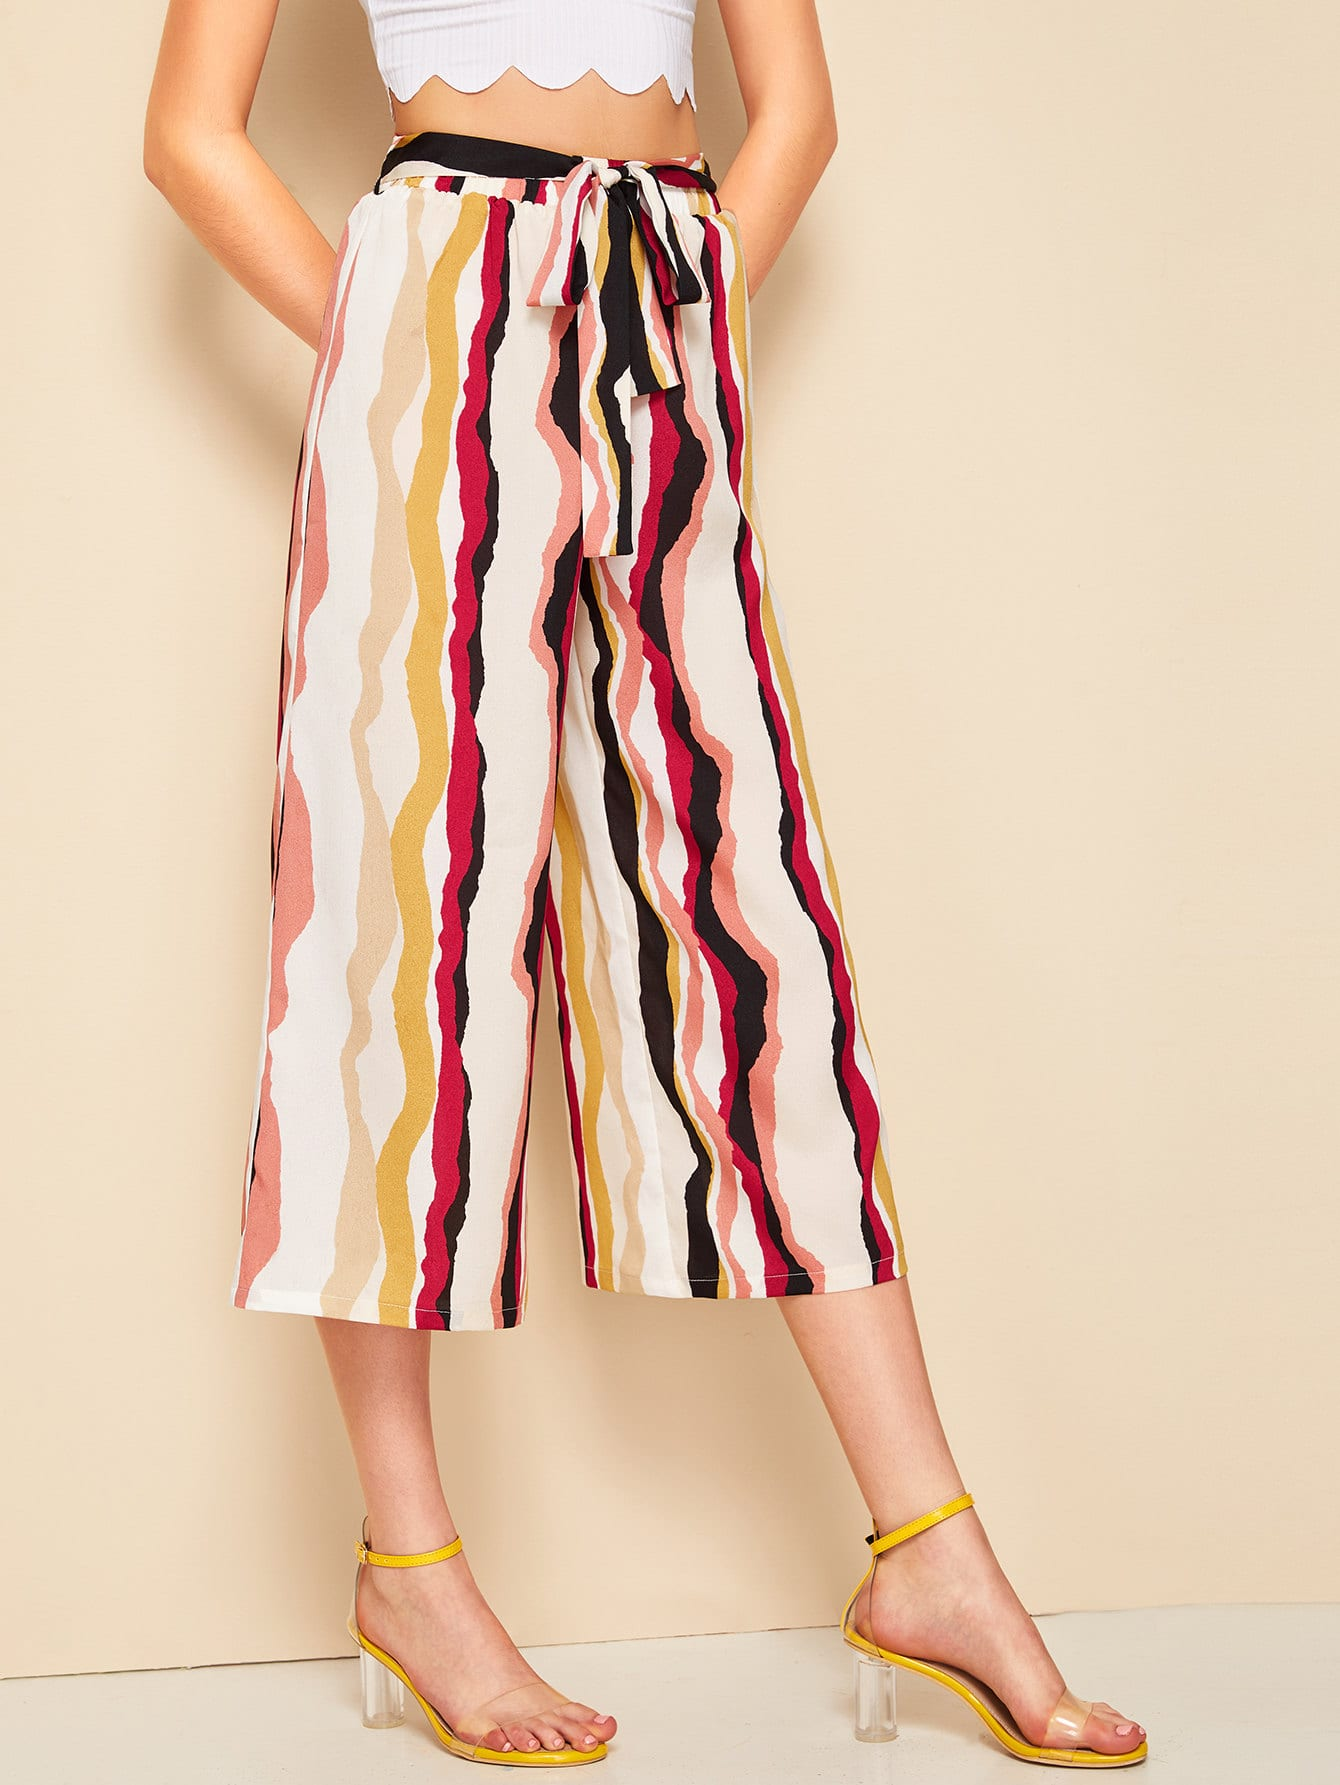 Colorful Striped Belted Capris Palazzo Pants